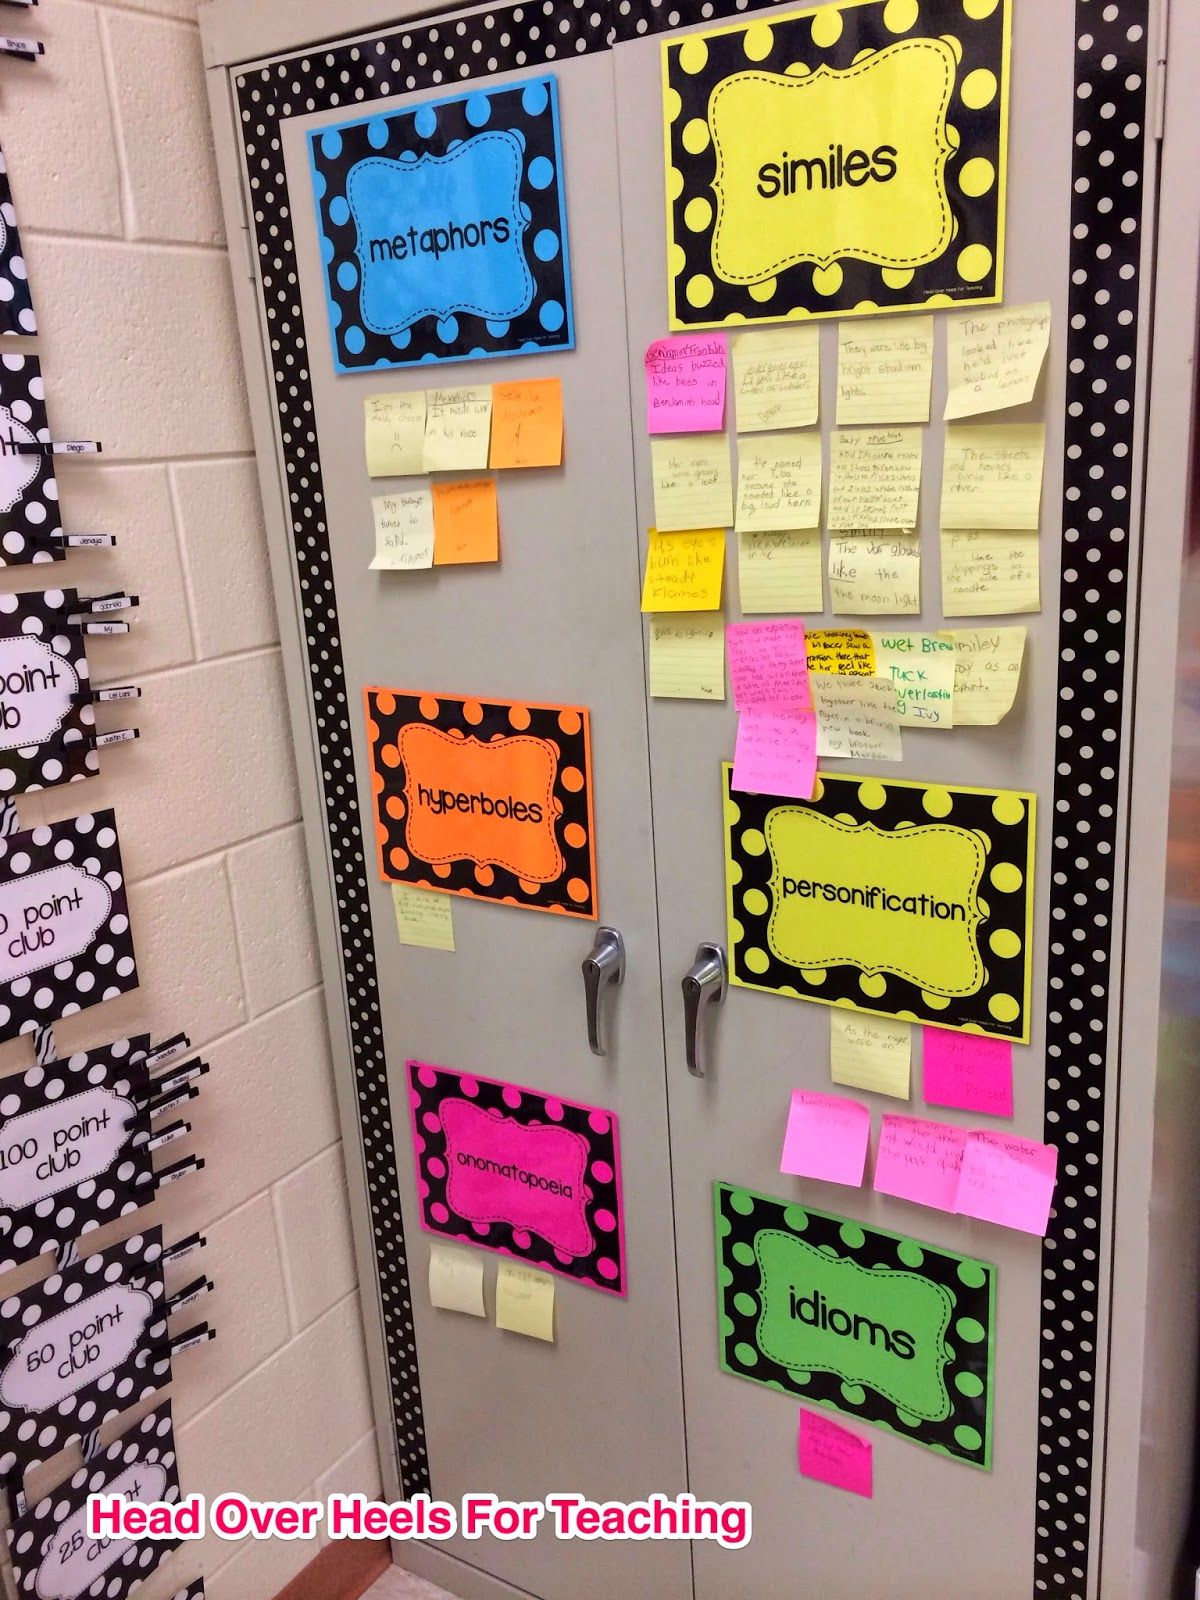 Post It Notes For Students To Use To Show When They Find